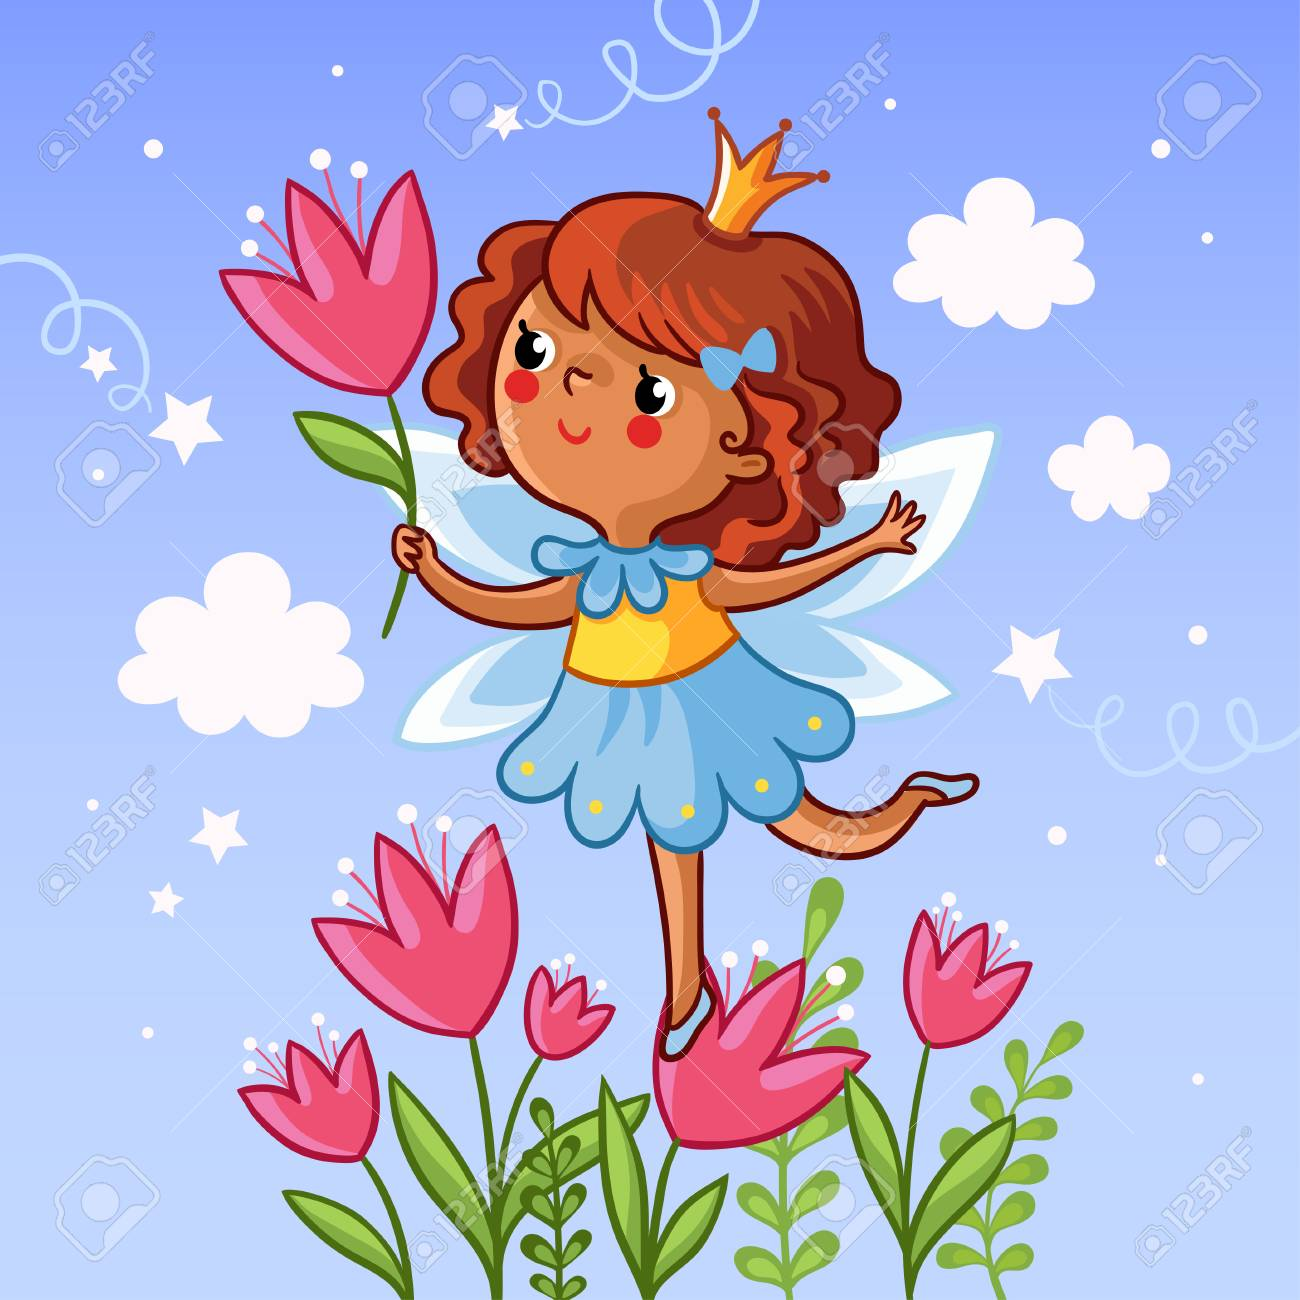 Cute little girl on a flower. The girl with a flower in her hand on the cloudy background. Vector illustration. Drawing on children theme. Little princess on a flower. Girl with tulips. - 60483735